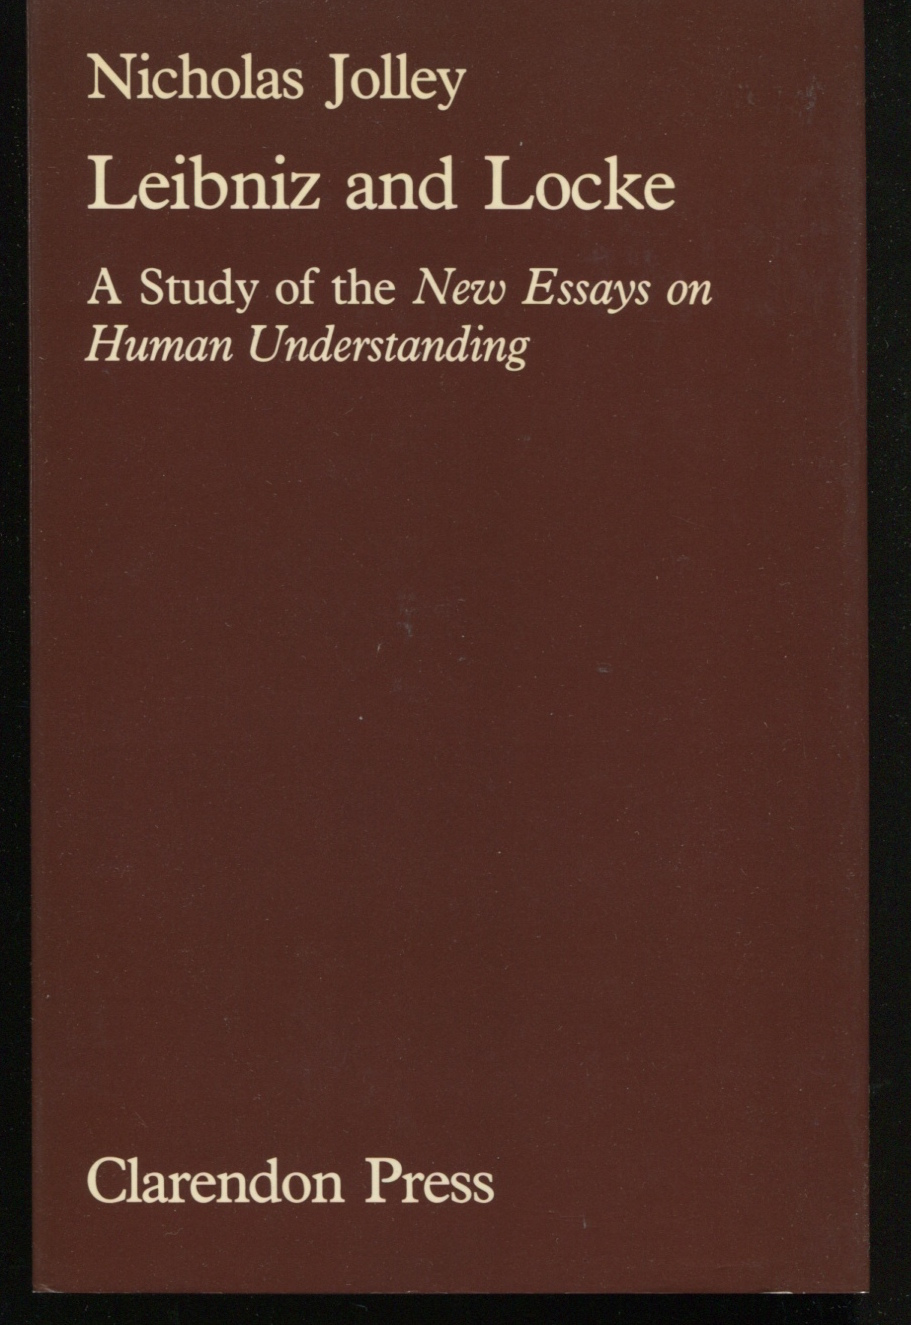 Leibniz and Locke: A Study of the New Essays on Human Understanding.